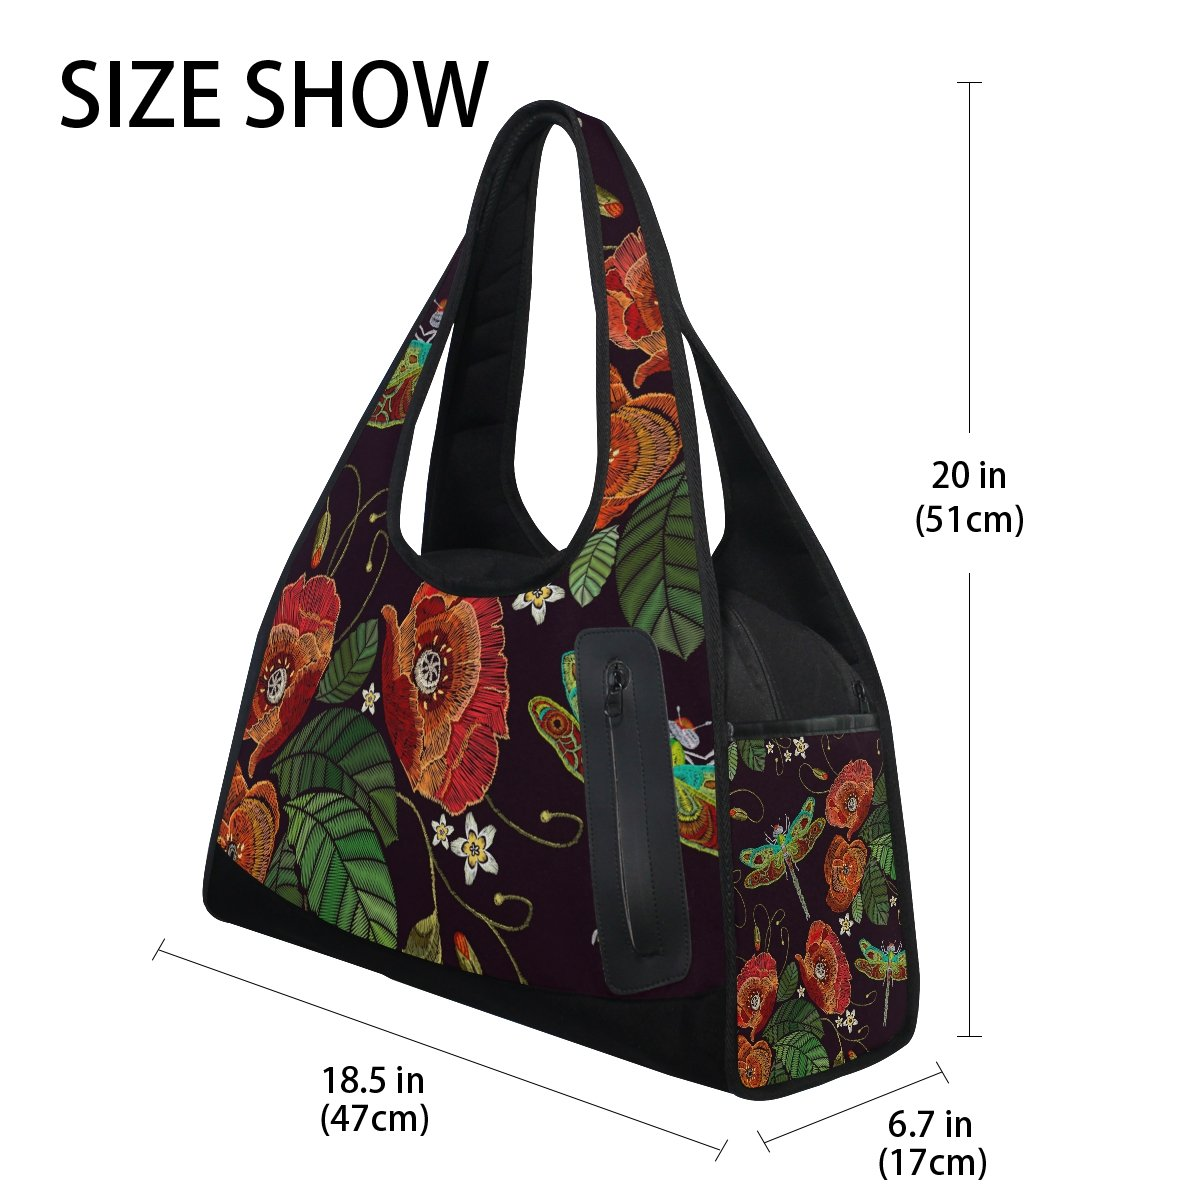 AHOMY Sports Gym Bag Poppy Flowers Dragonfly Embroidery Duffel Bag Travel Shoulder Bag